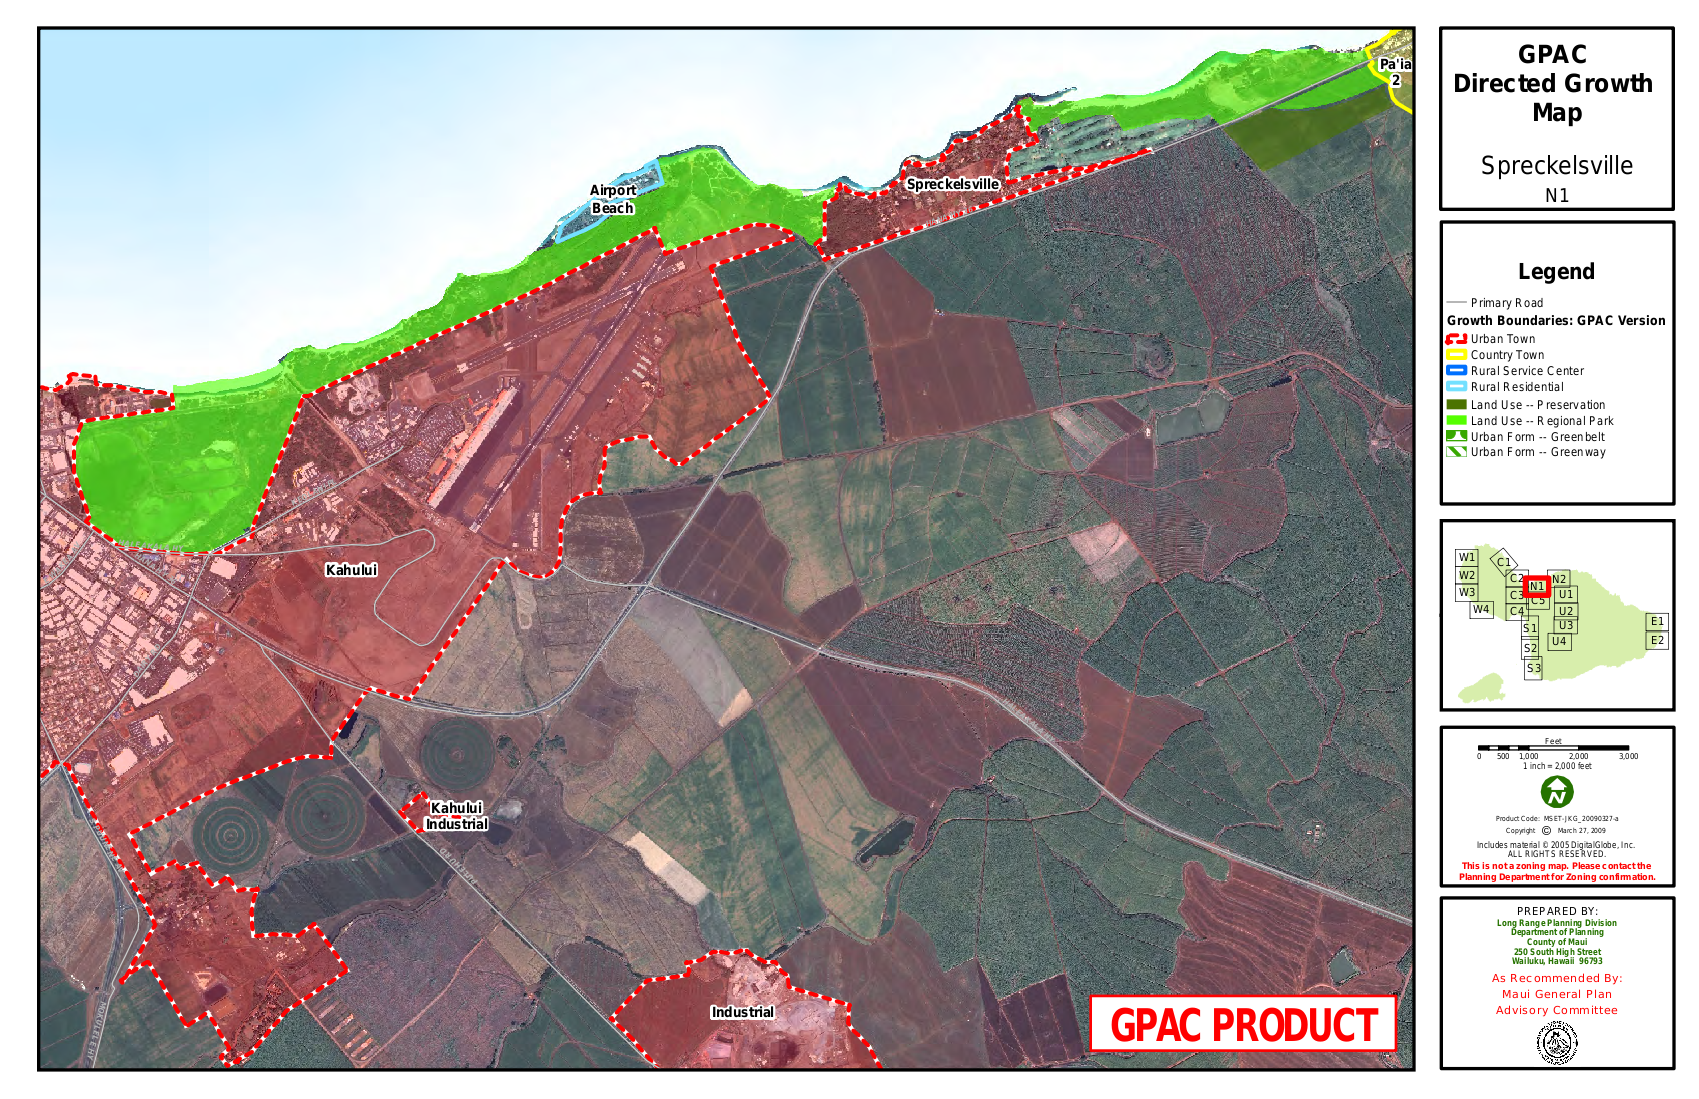 GPAC Directed Growth Map Spreckelsville